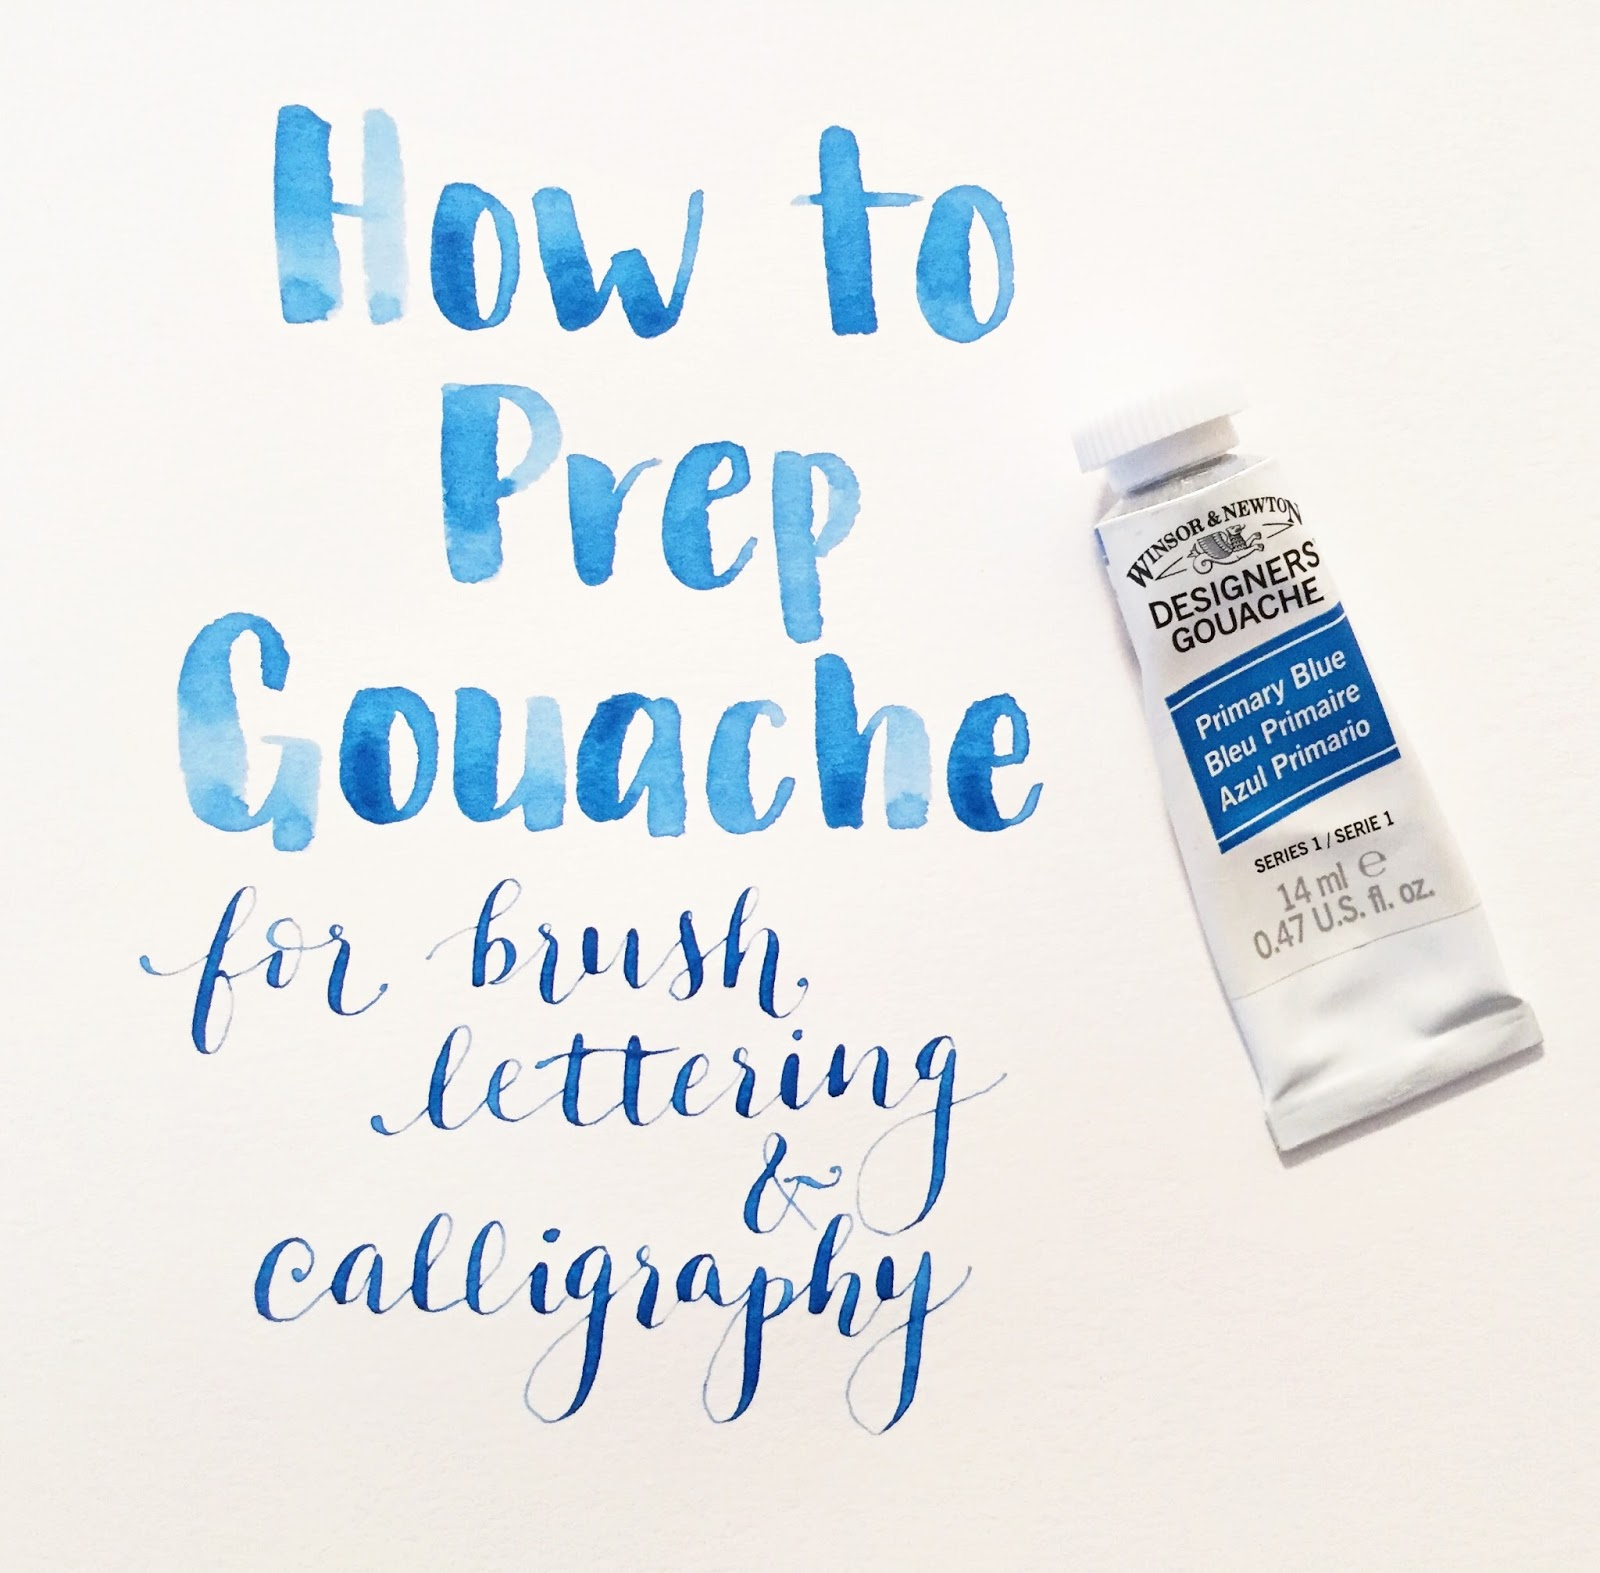 Be Used For Both Brush Lettering And Calligraphy This Post Is The Important Next Step Before I Move On Into Sharing Specifics About Styles